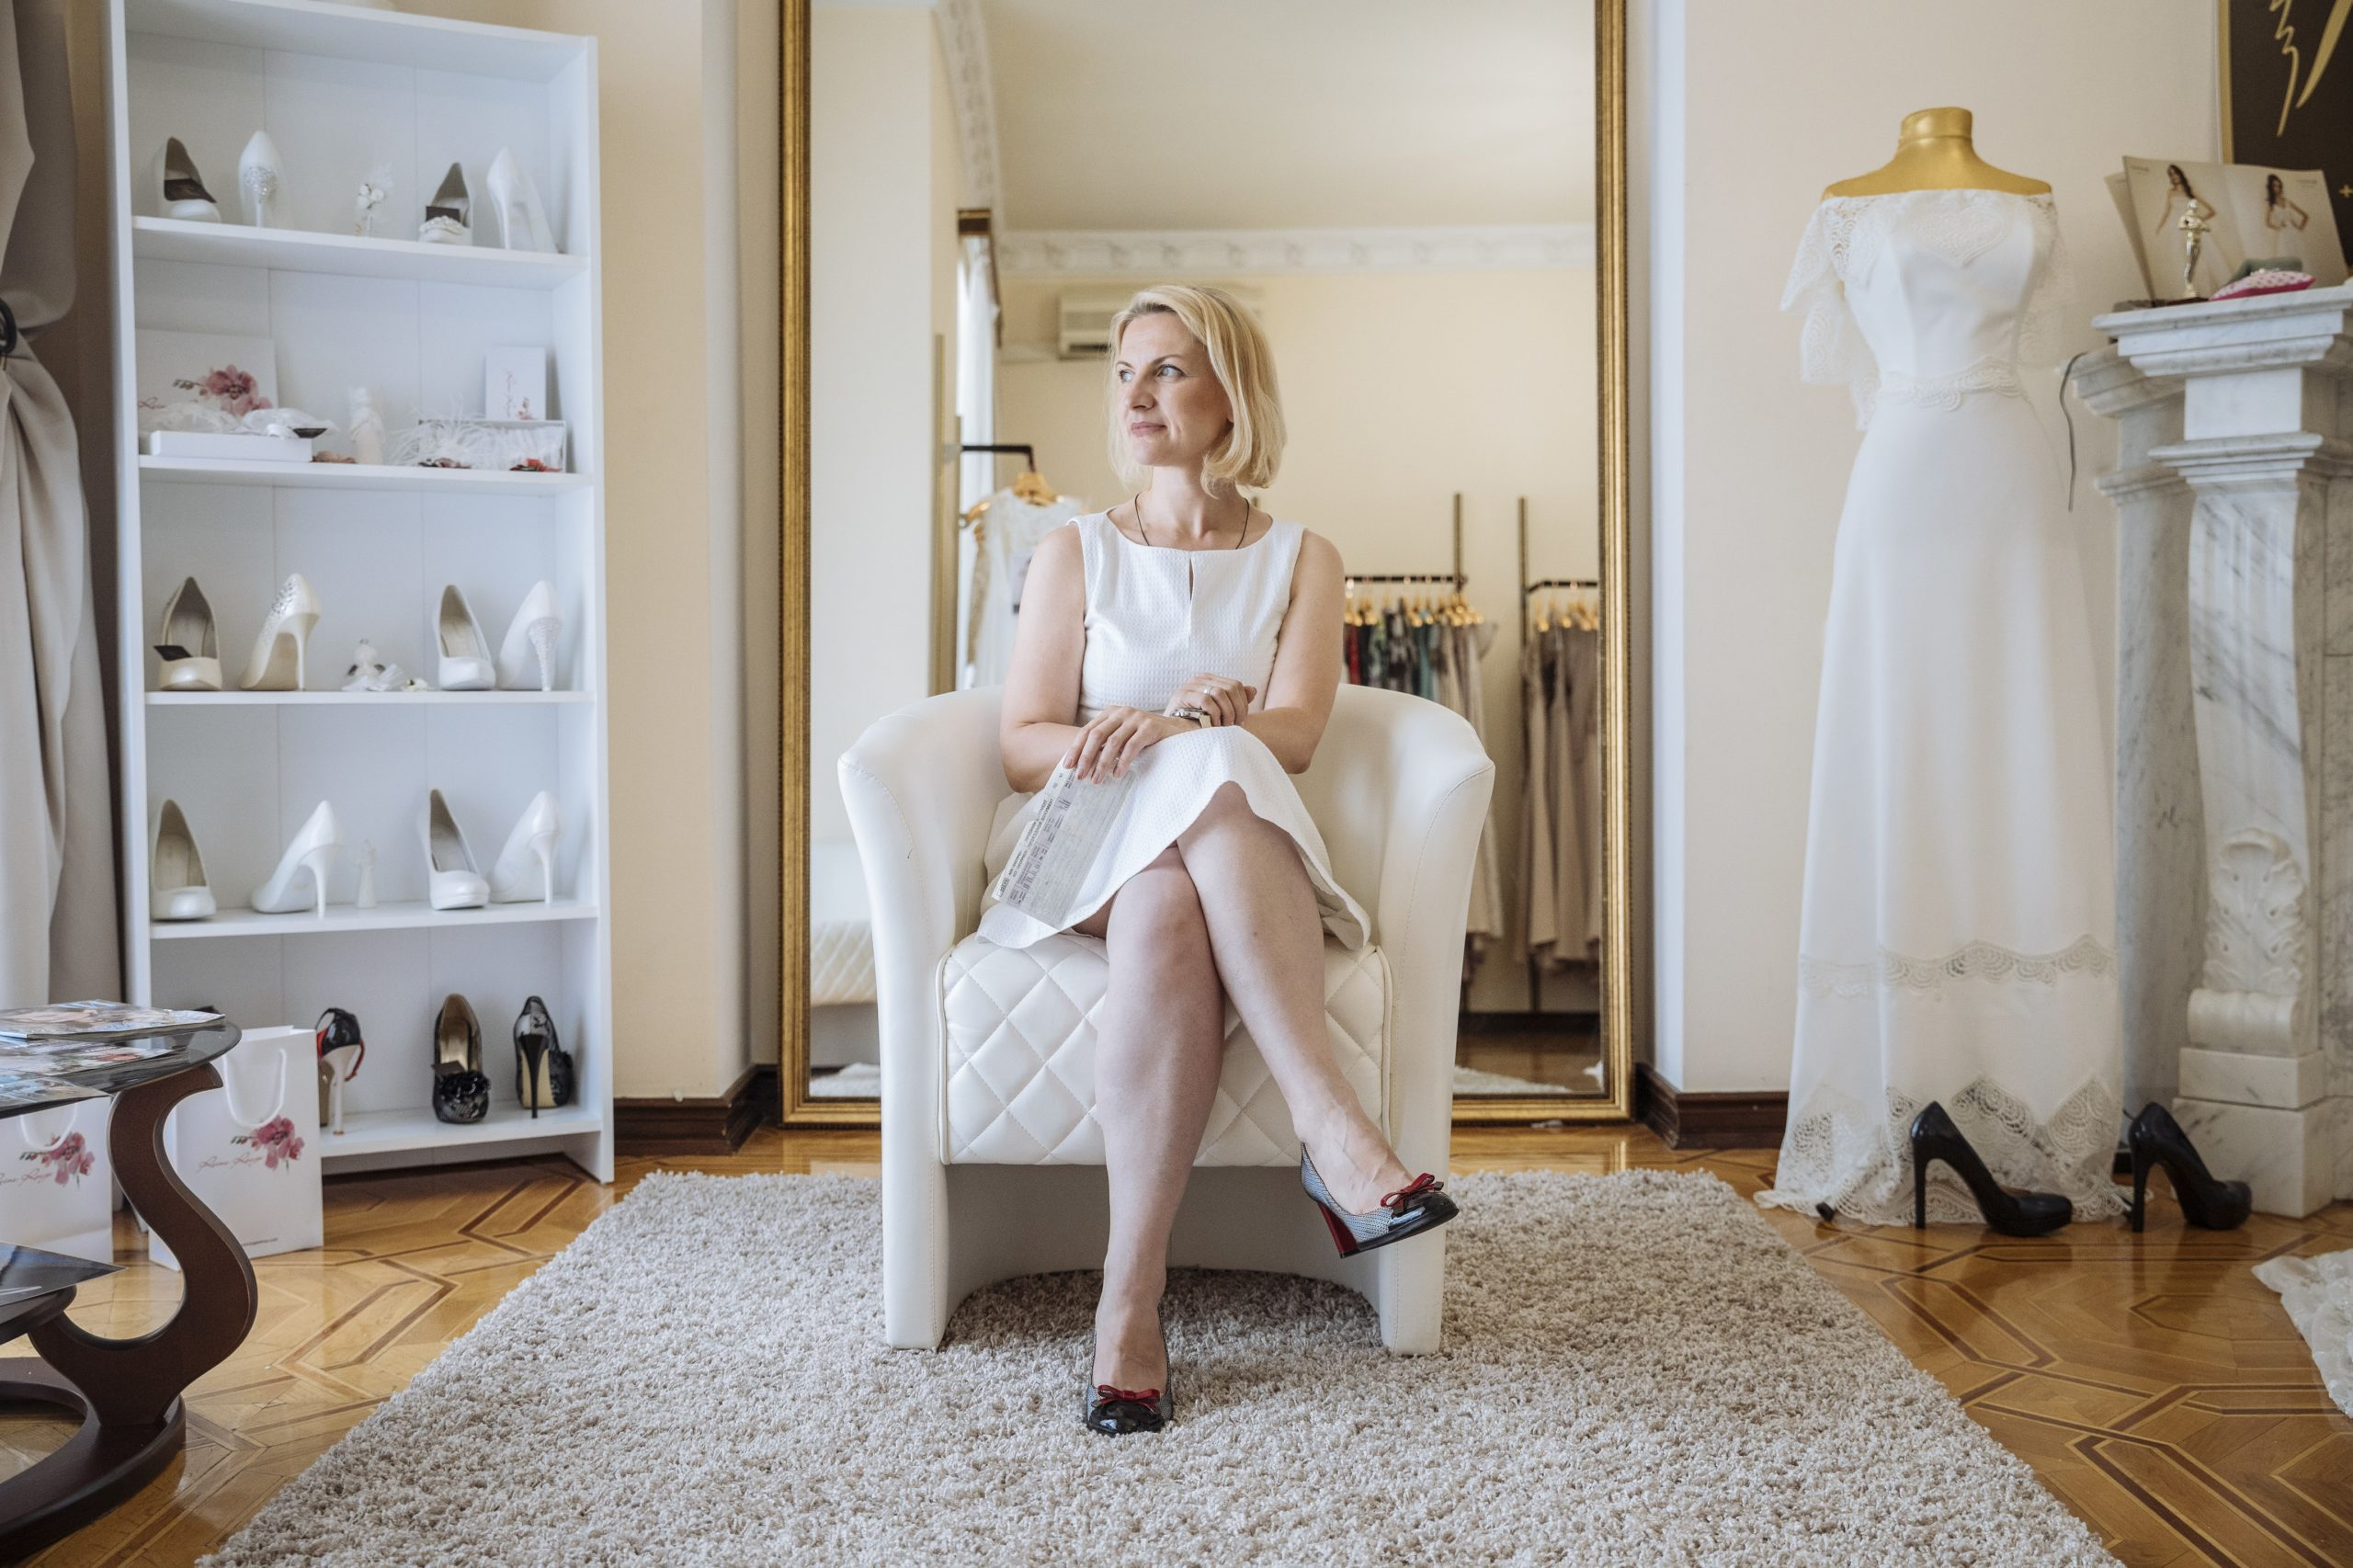 """Tatiana sits in her bridal shop in Kyiv, Ukraine. Originally from Donetsk, her local business was robbed in 2014 by armed groups and following the incident, decided to flee to the capital. She eventually befriended a wedding dress designer who was also displaced from the conflict. After seeing her friend fall on hard times, the two decided to open a business together designing and selling dresses. Over the next couple of years, Tatiana would go on to create her own business selling wedding dresses through the help of other women who were displaced from the conflict as well as an IOM business grant. """"There is something really special when you see a woman walk out of here with a dress saying, 'that's the one for me' and just knowing you played a part in that,"""" she said. To this day, Tatiana still carries the train ticket she bought to leave Donetsk as a reminder of how far she's come after fleeing her home from the conflict and to be appreciative of the good moments in life. ©Muse Mohammed"""